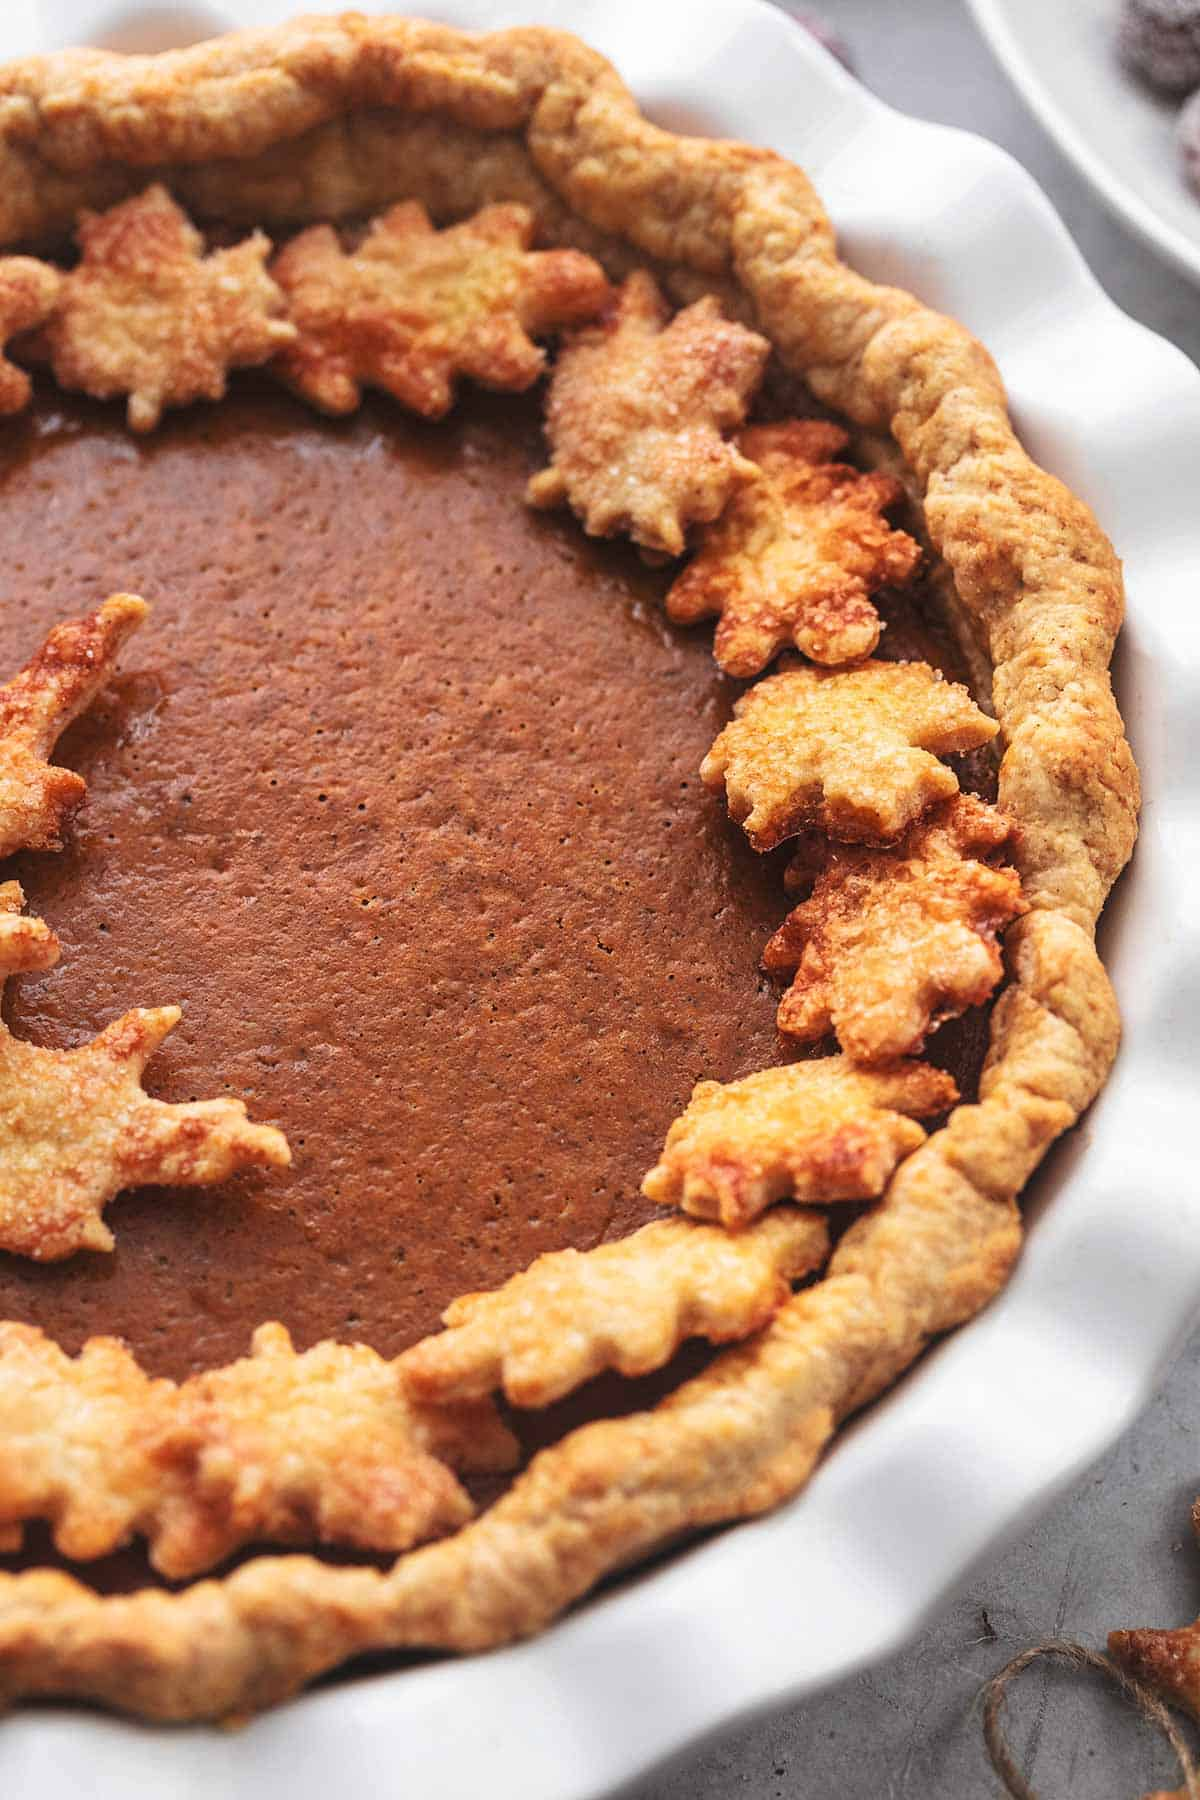 close up of pumpkin pie with golden crust and small crust leaves in a pie pan.